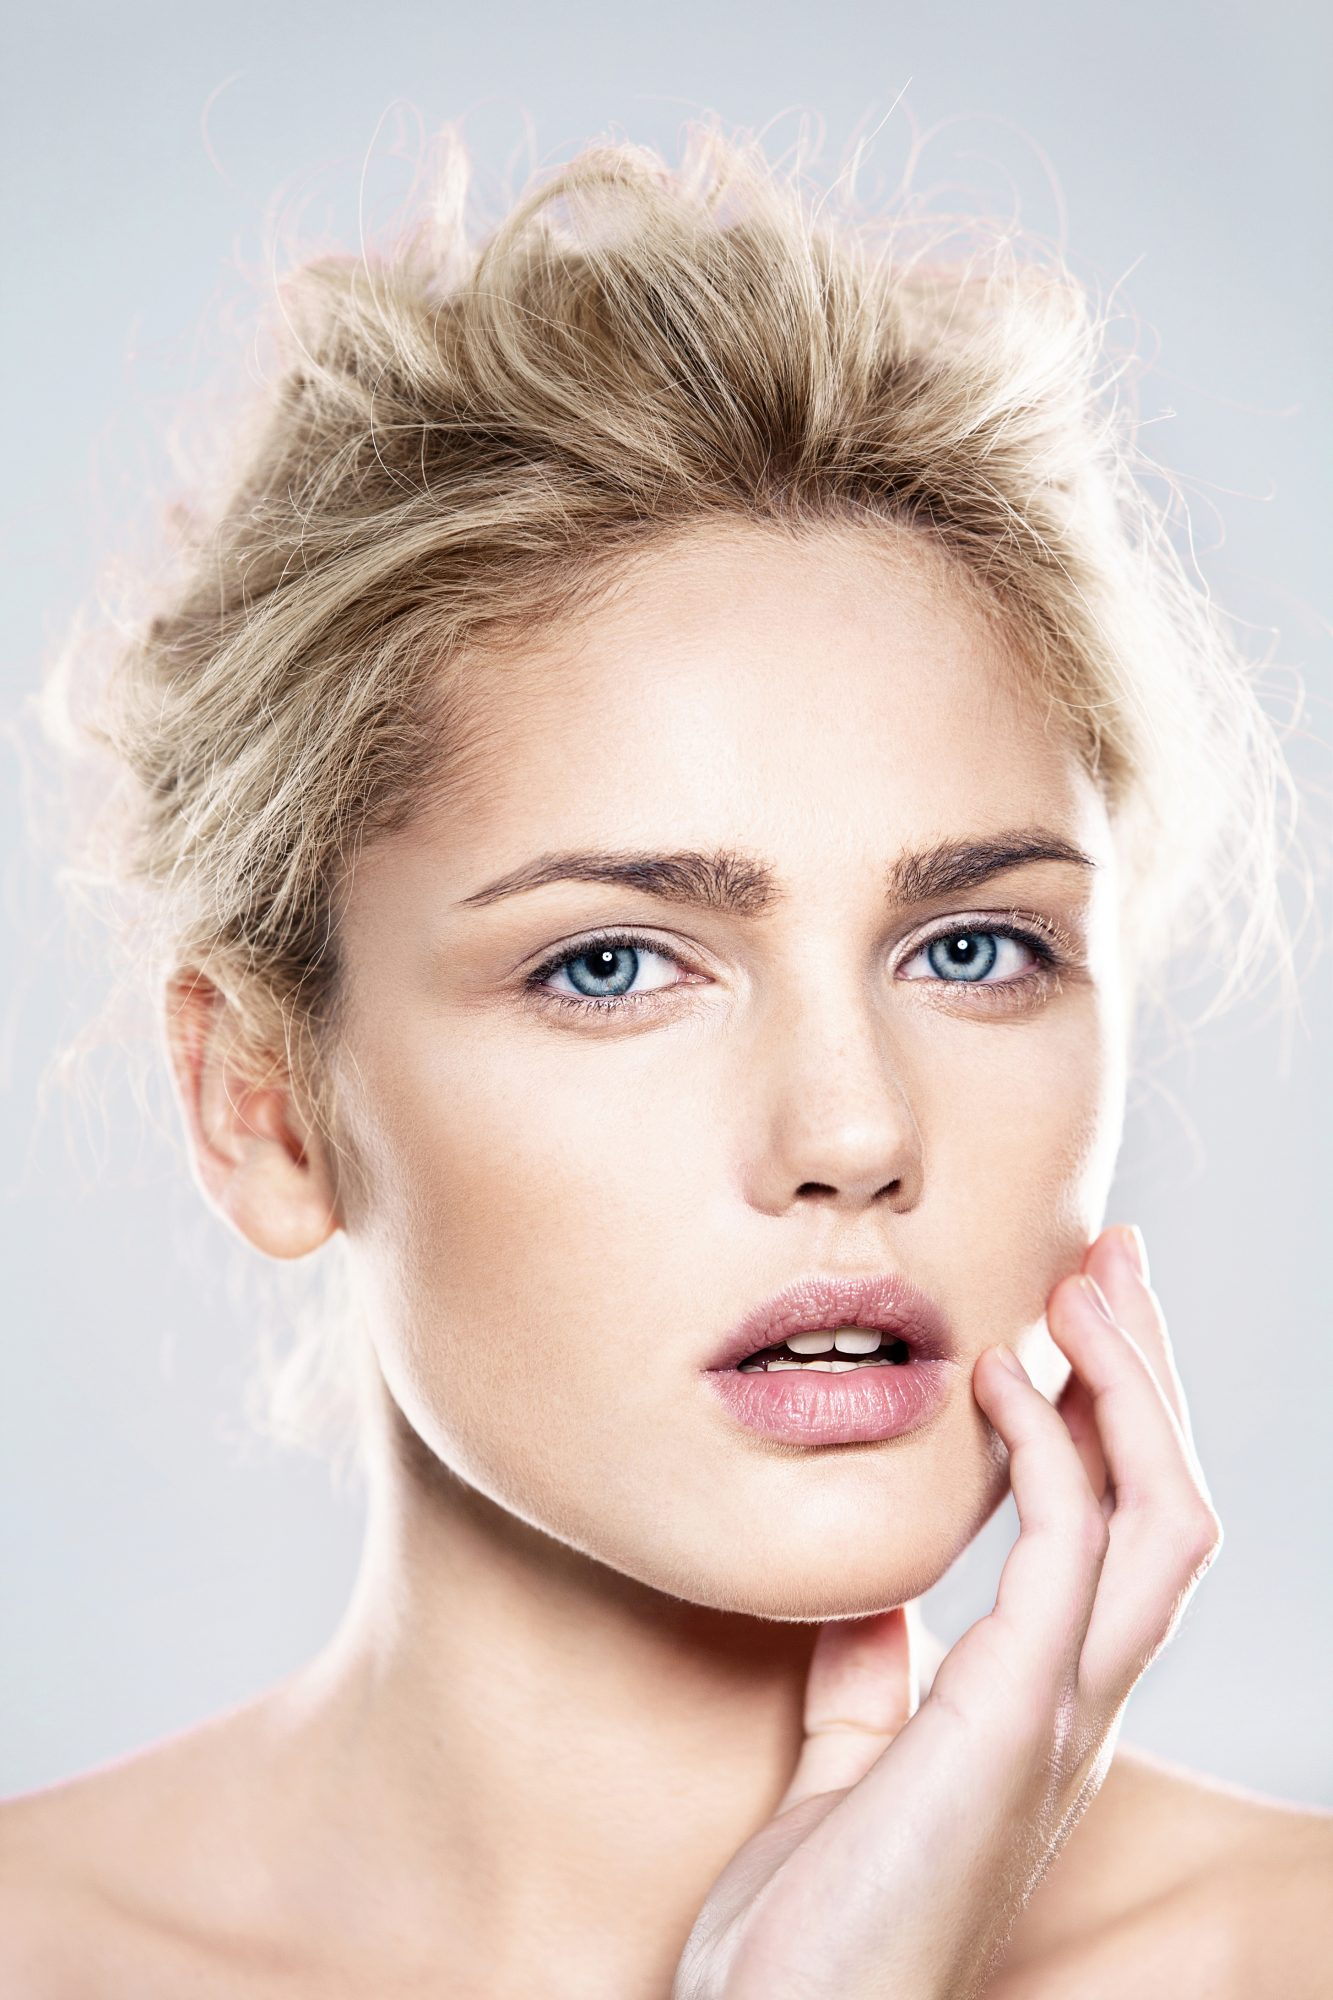 7 Healthy Diet Changes for Better Skin